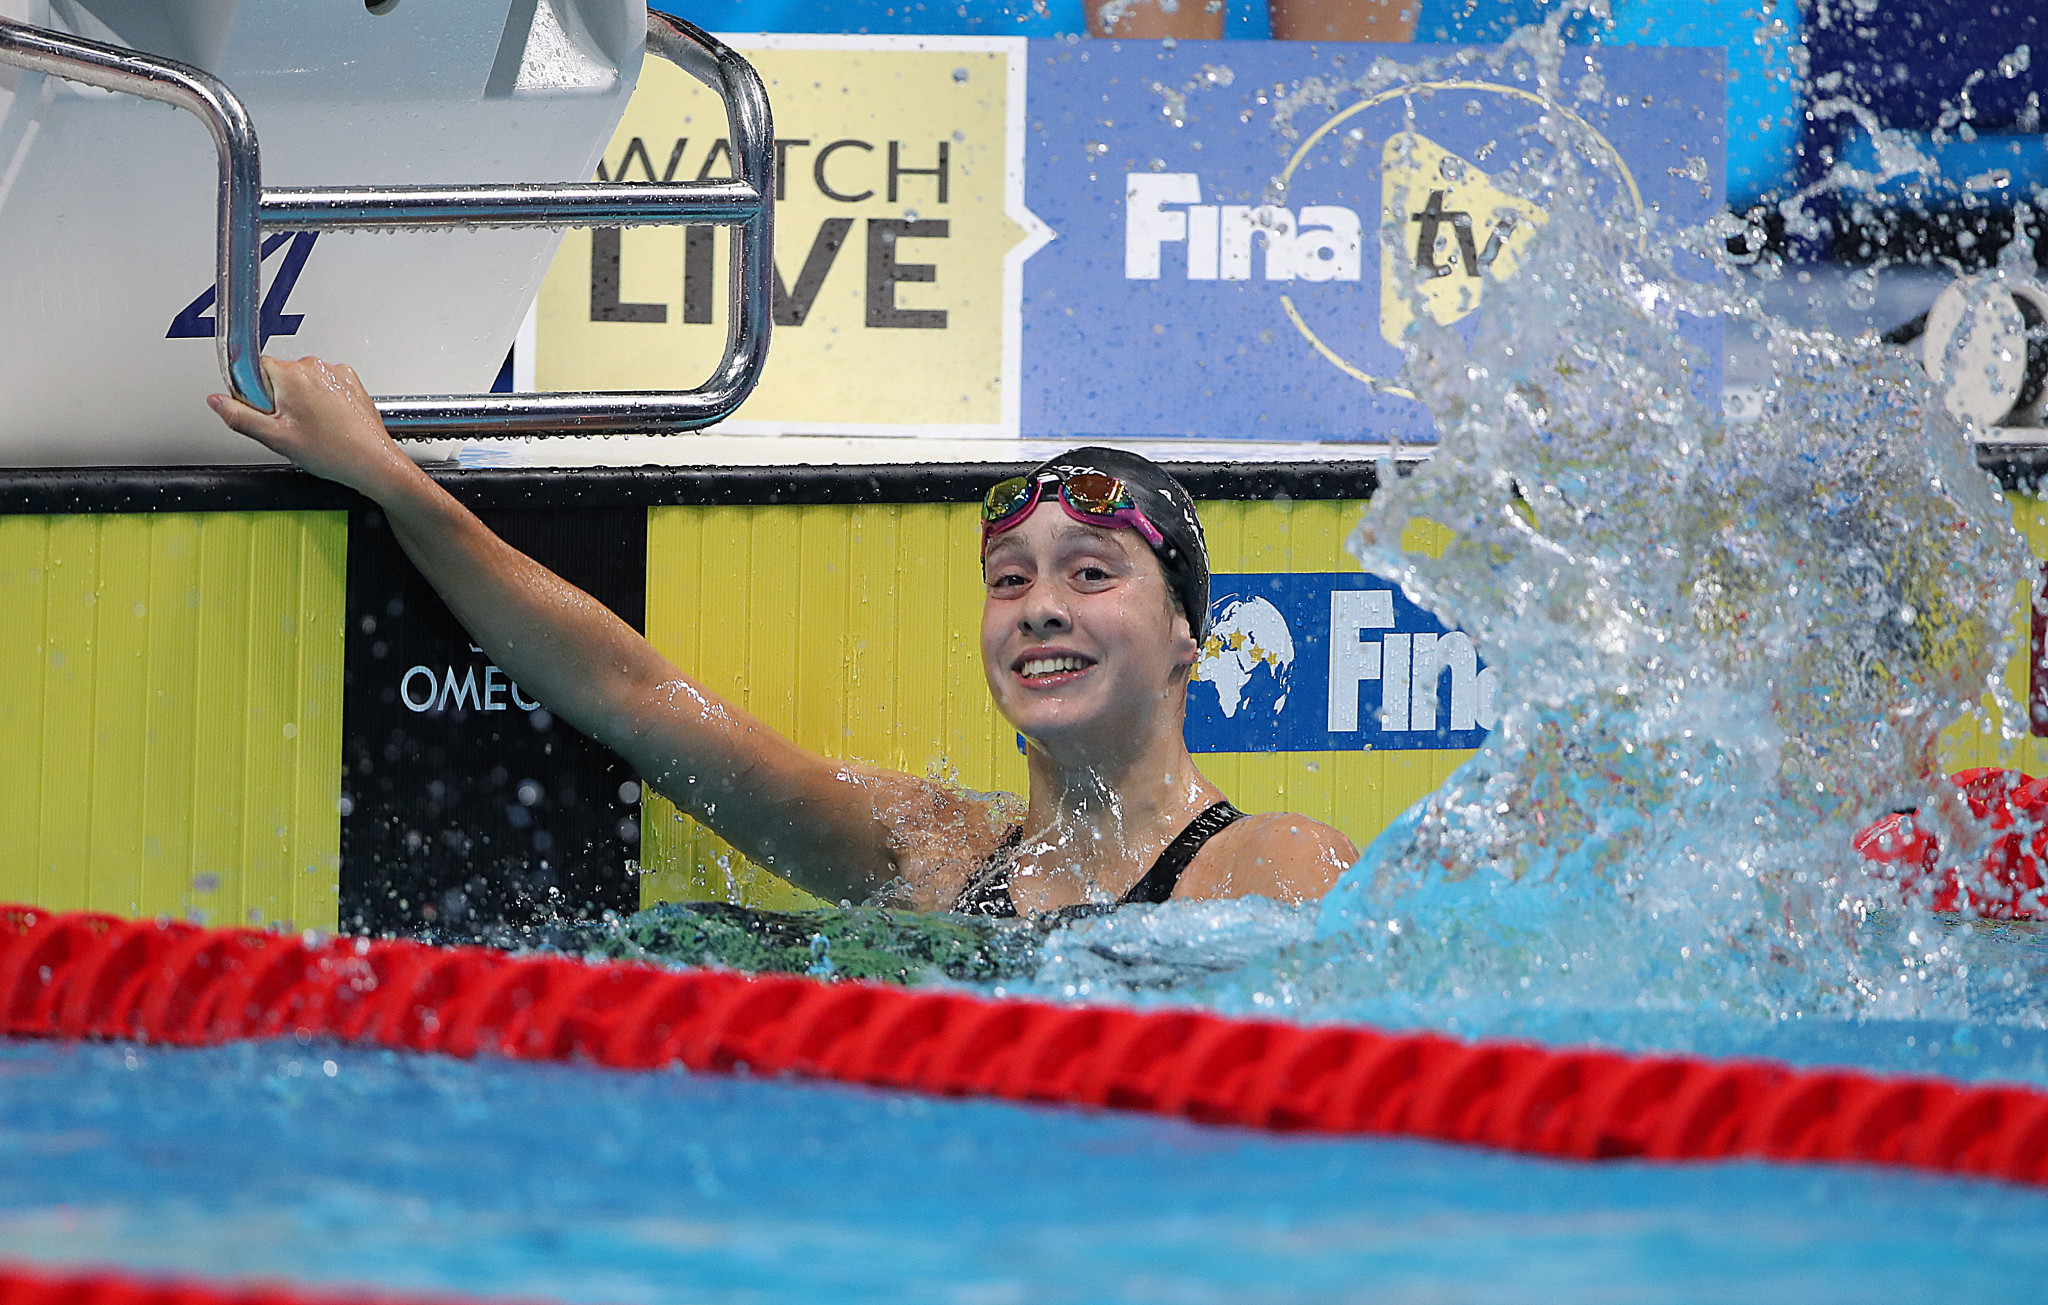 Spain's Alba Vazquez Ruiz broke the women's junior world record in the women's 400 metres medley as action begun today at the 2019 FINA World Junior Championships in Budapest ©Getty Images